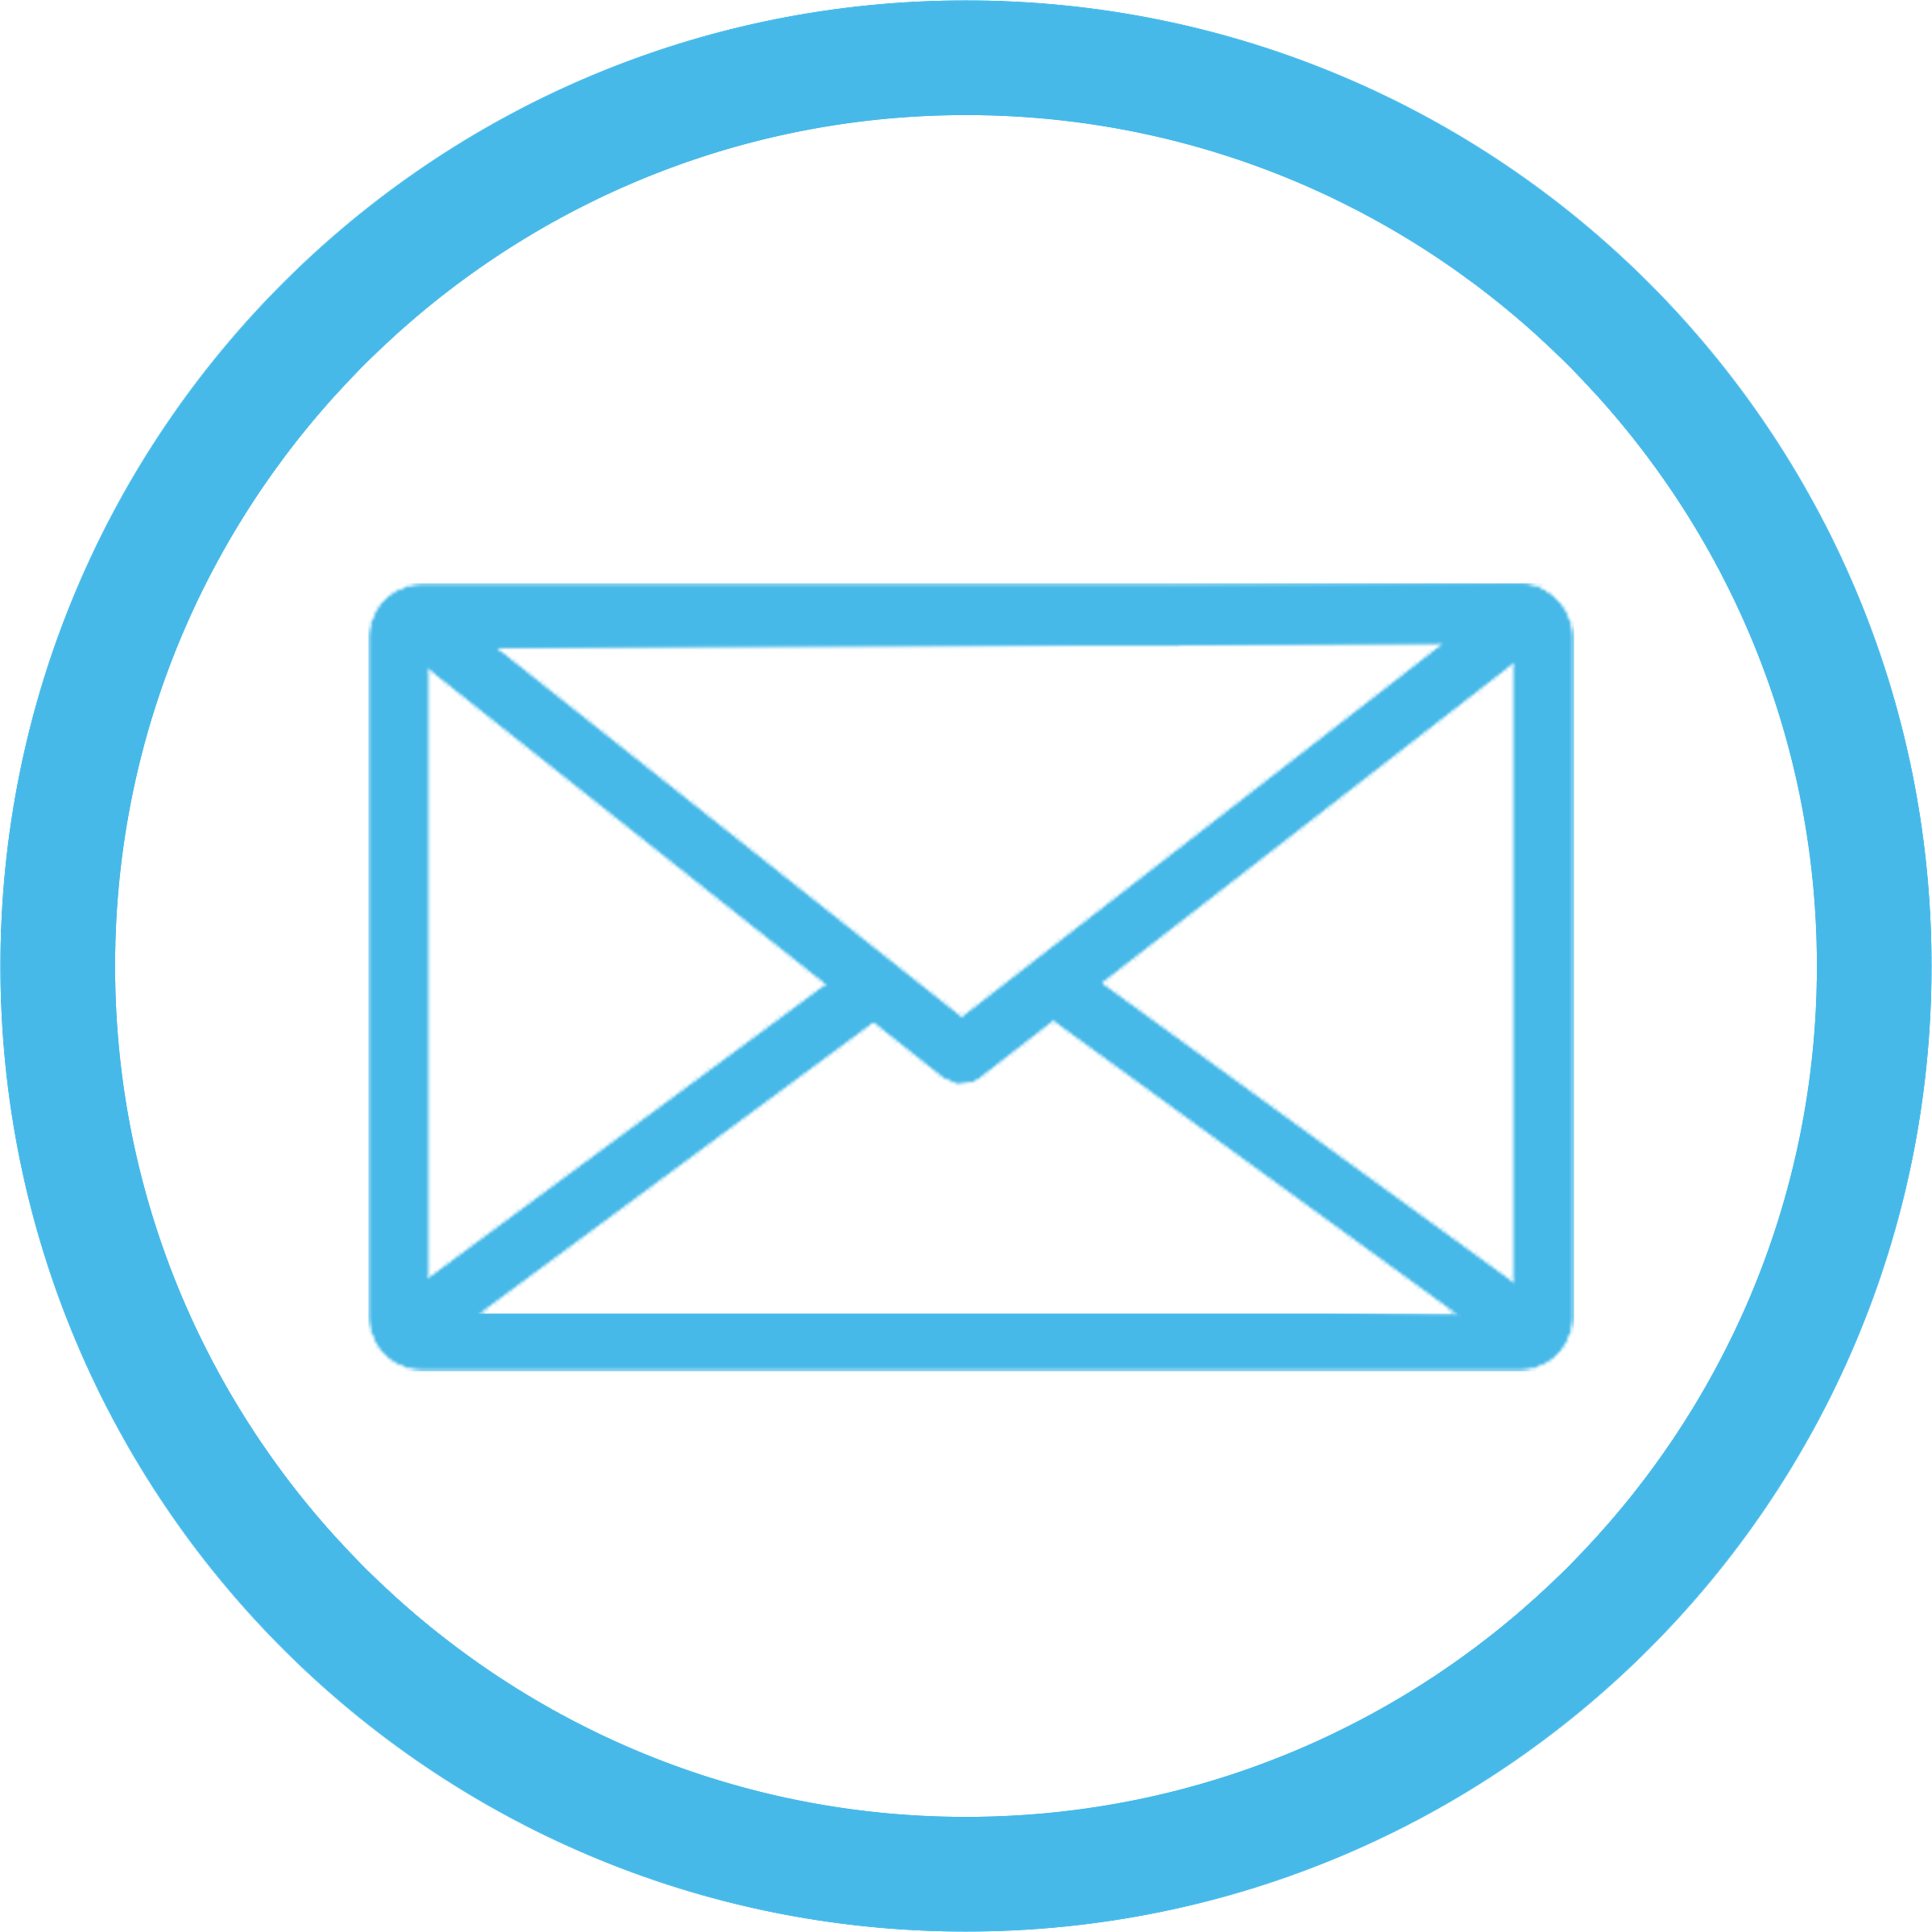 email-icon-23.png?height=2399&width=2399